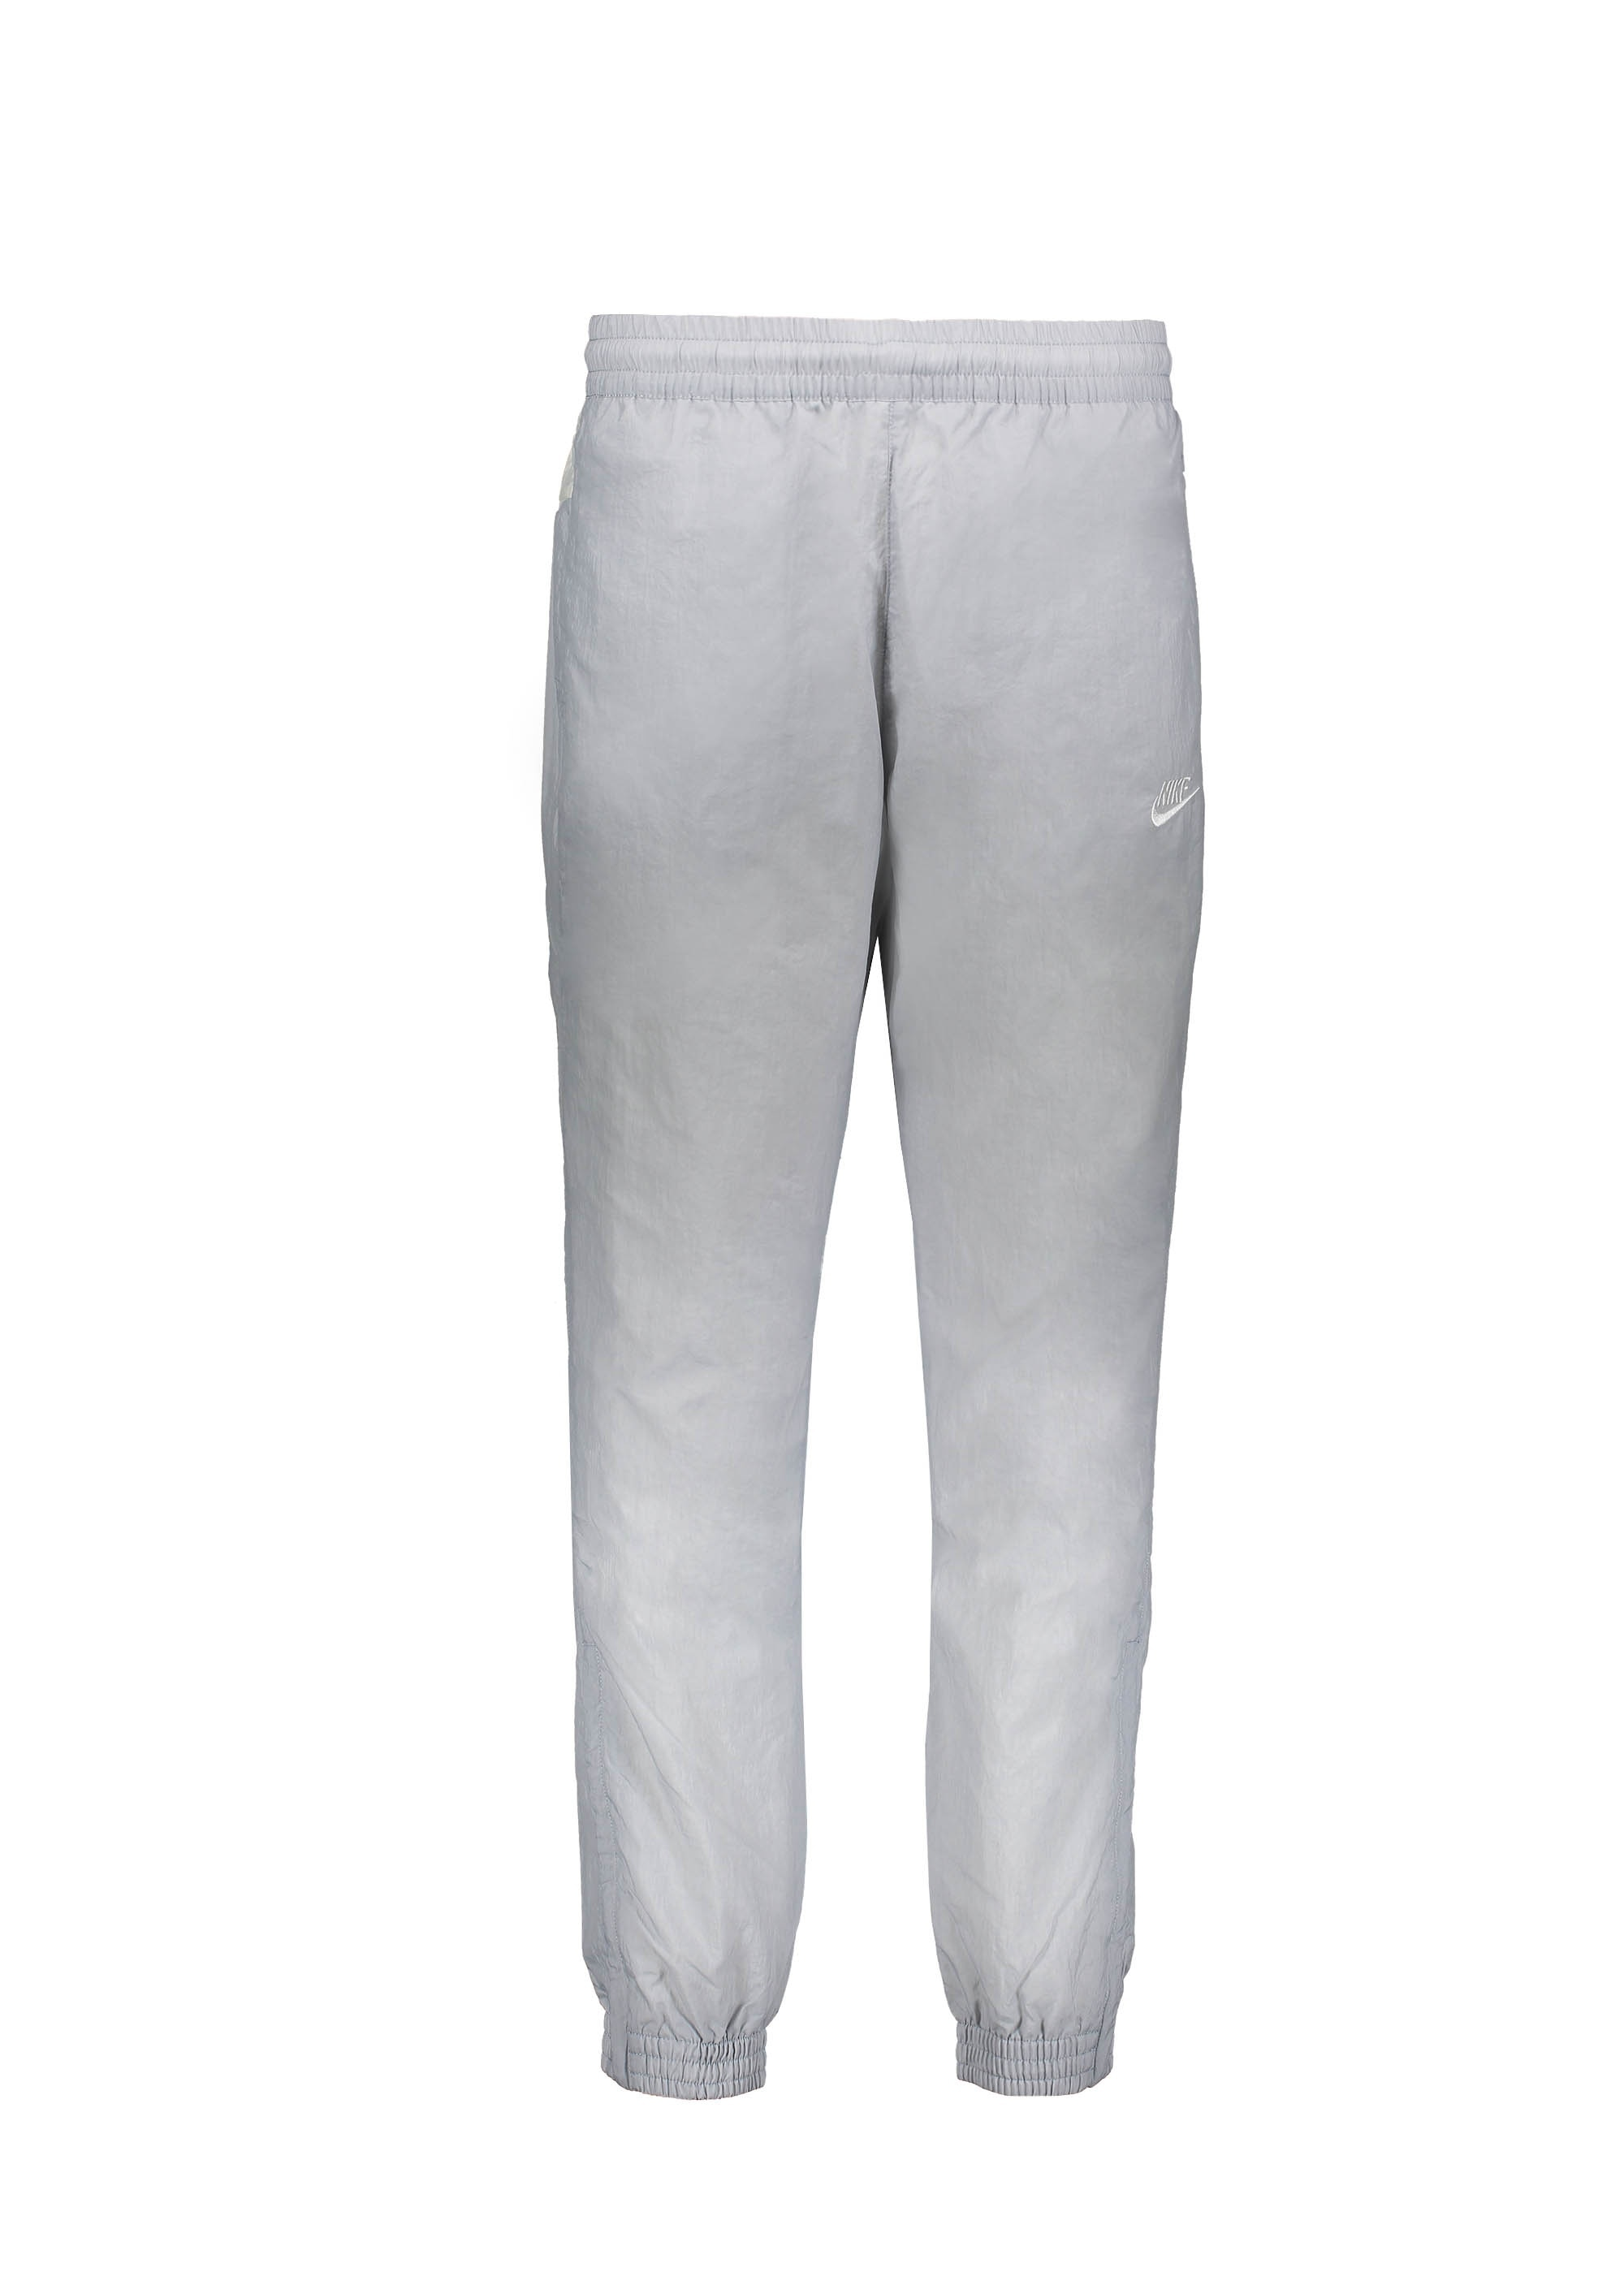 de37dfb7e13a48 Nike Apparel NSW Swoosh Woven Pant - Wolf Grey - Track Pants from ...